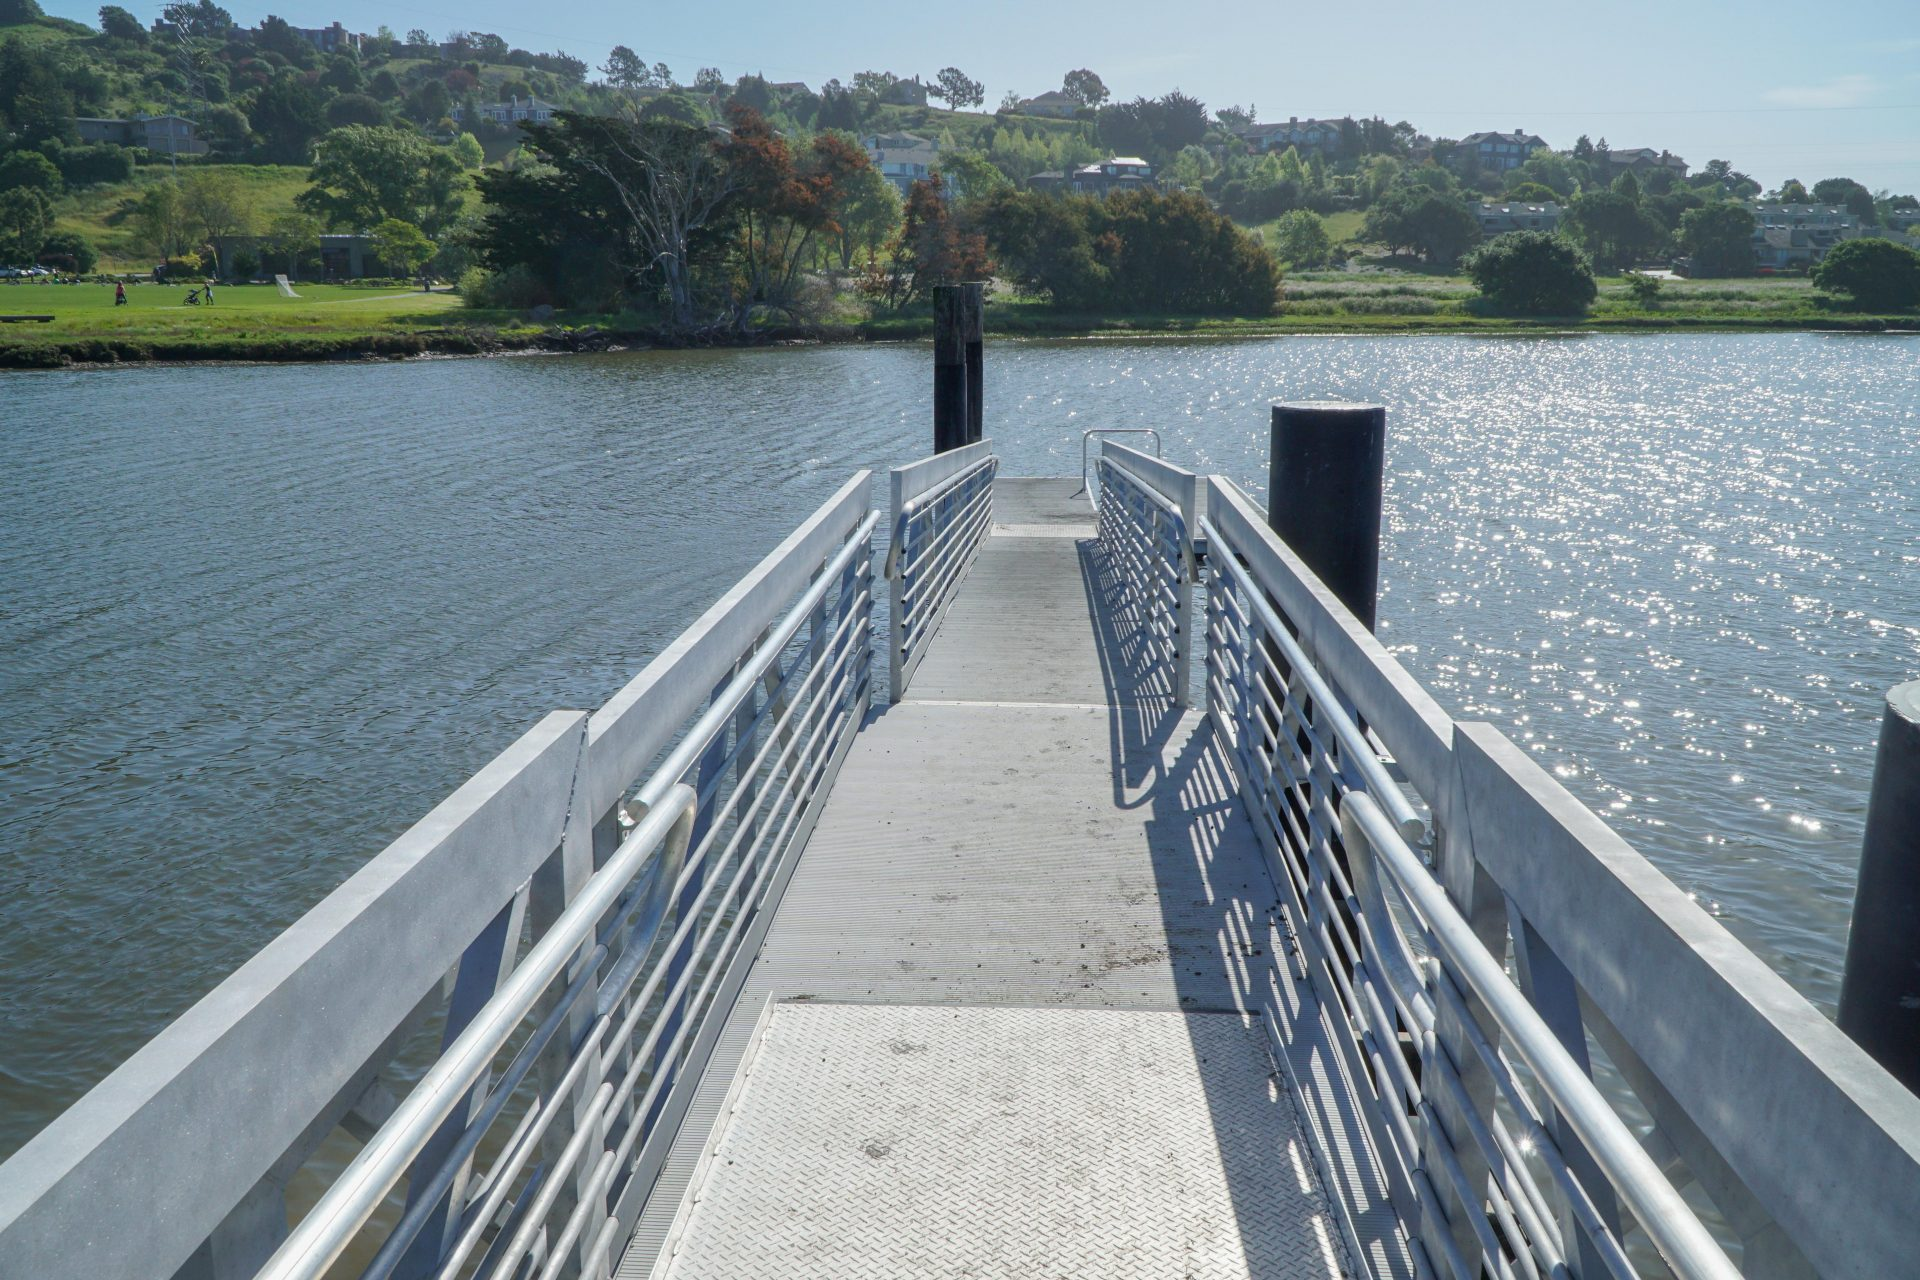 metal pier with railings down to water